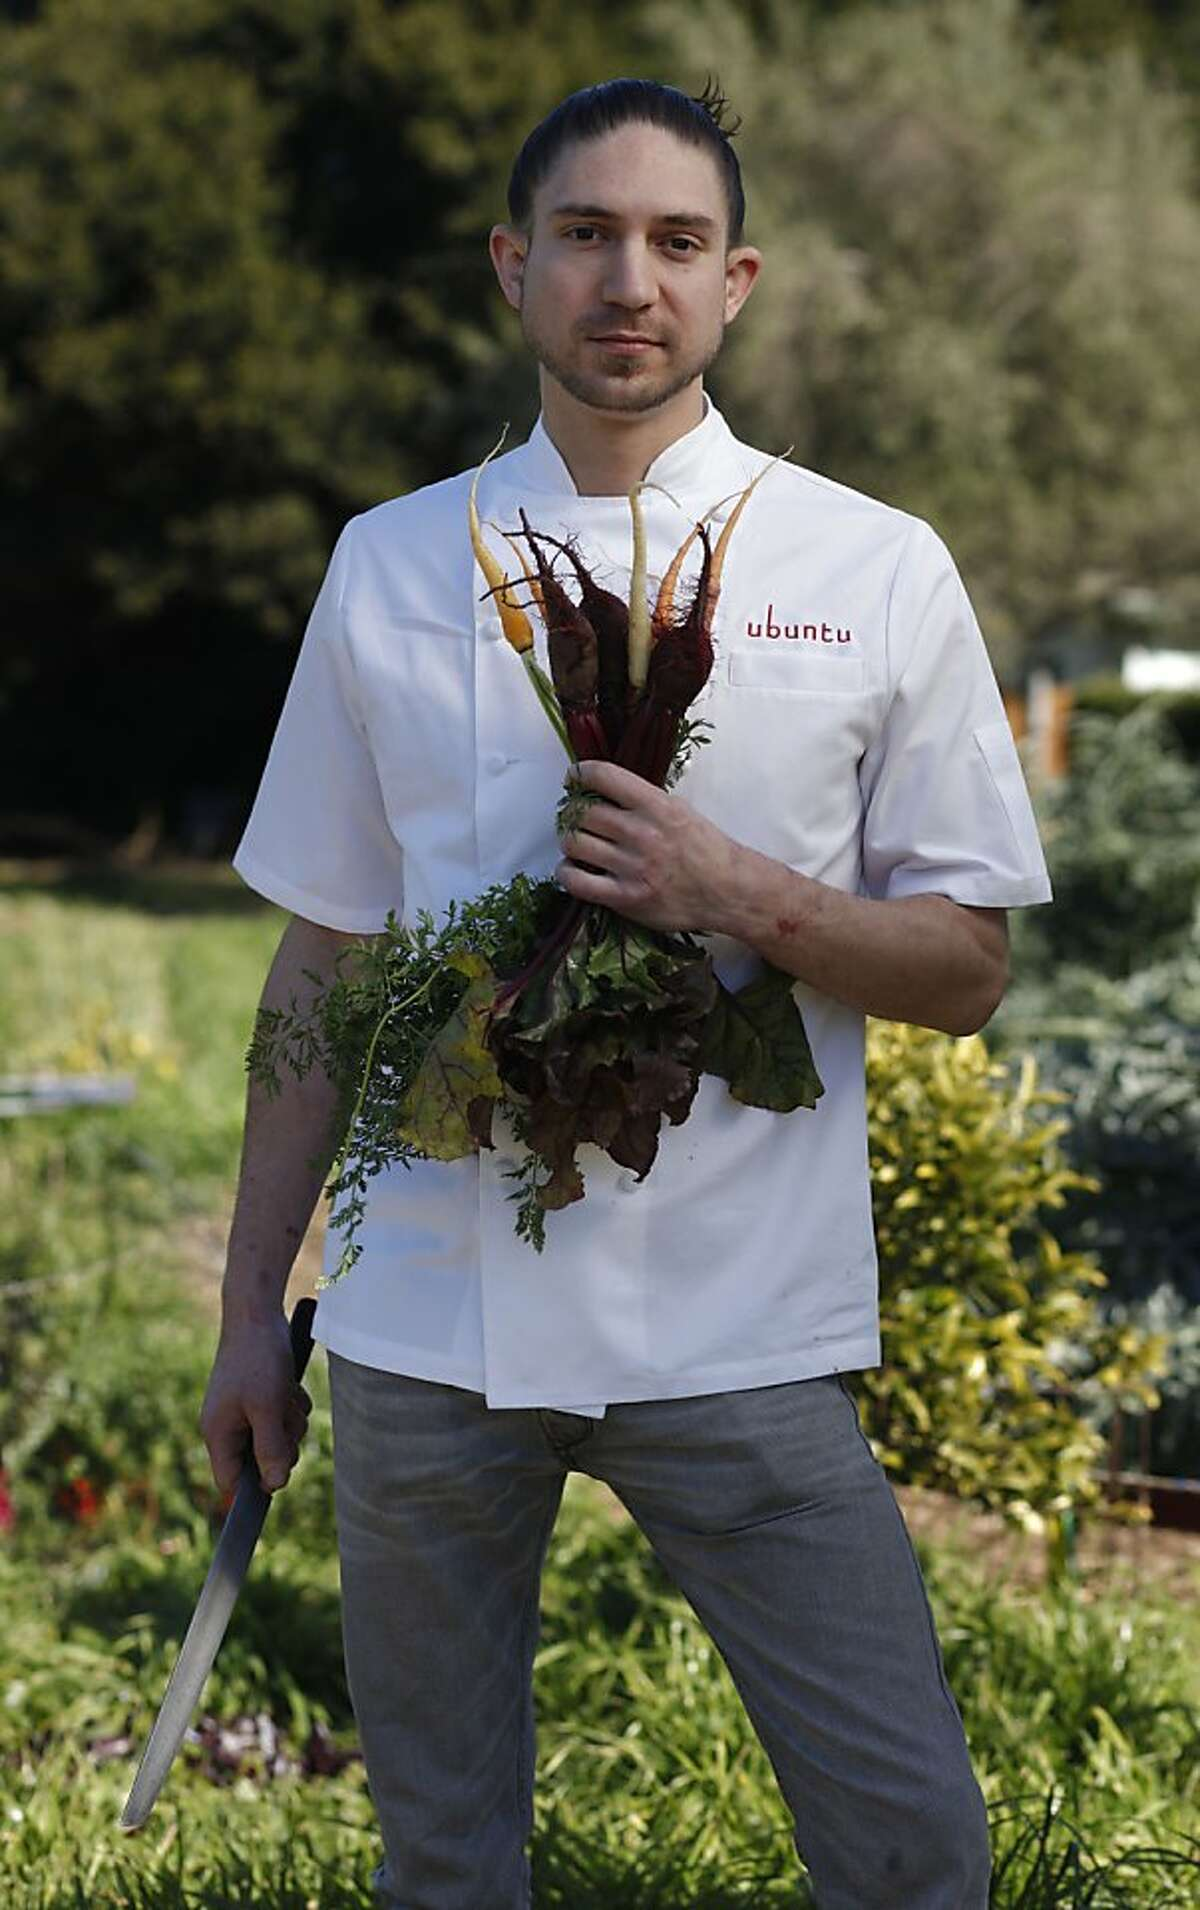 Aaron London, Chef at Ubuntu in Napa, one of six bay area rising star chefs stands for a portrait at the Edible Schoolyard on the Martin Luther King Middle School campus on Tuesday Feb. 22, 2011 in Berkeley, Calif.